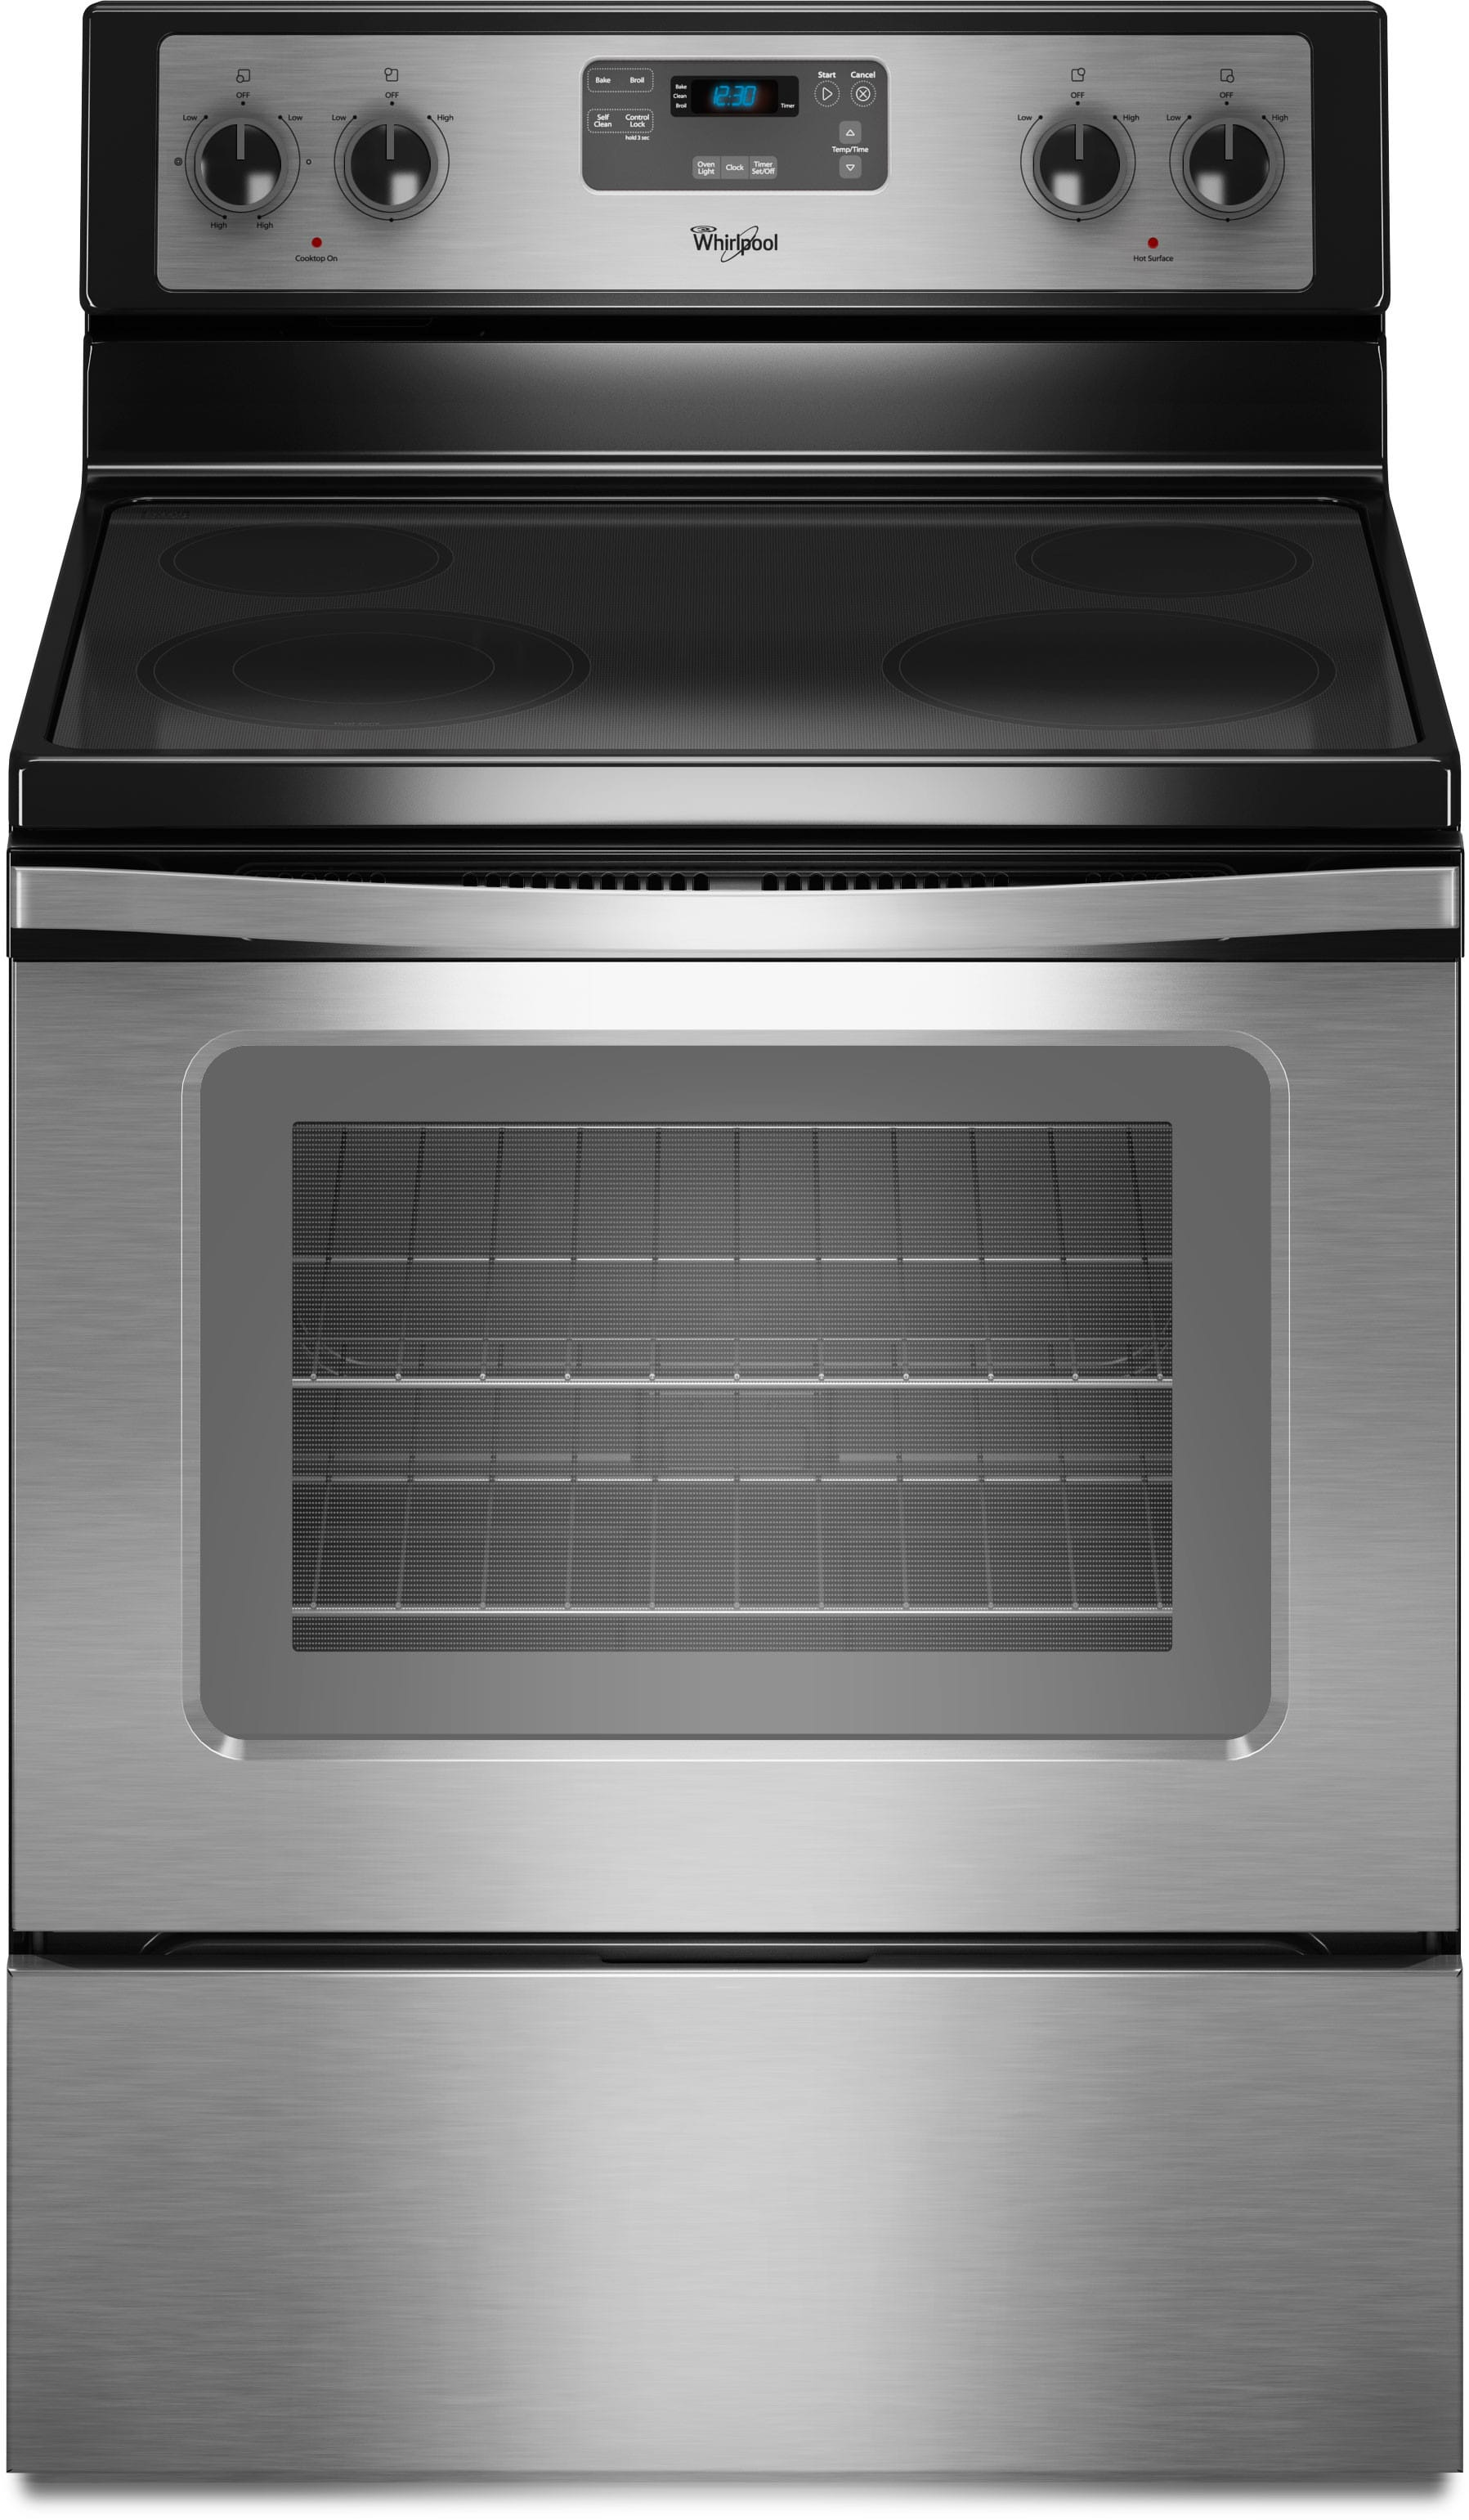 Whirlpool Wfe510s0as 30 Inch Freestanding Electric Range